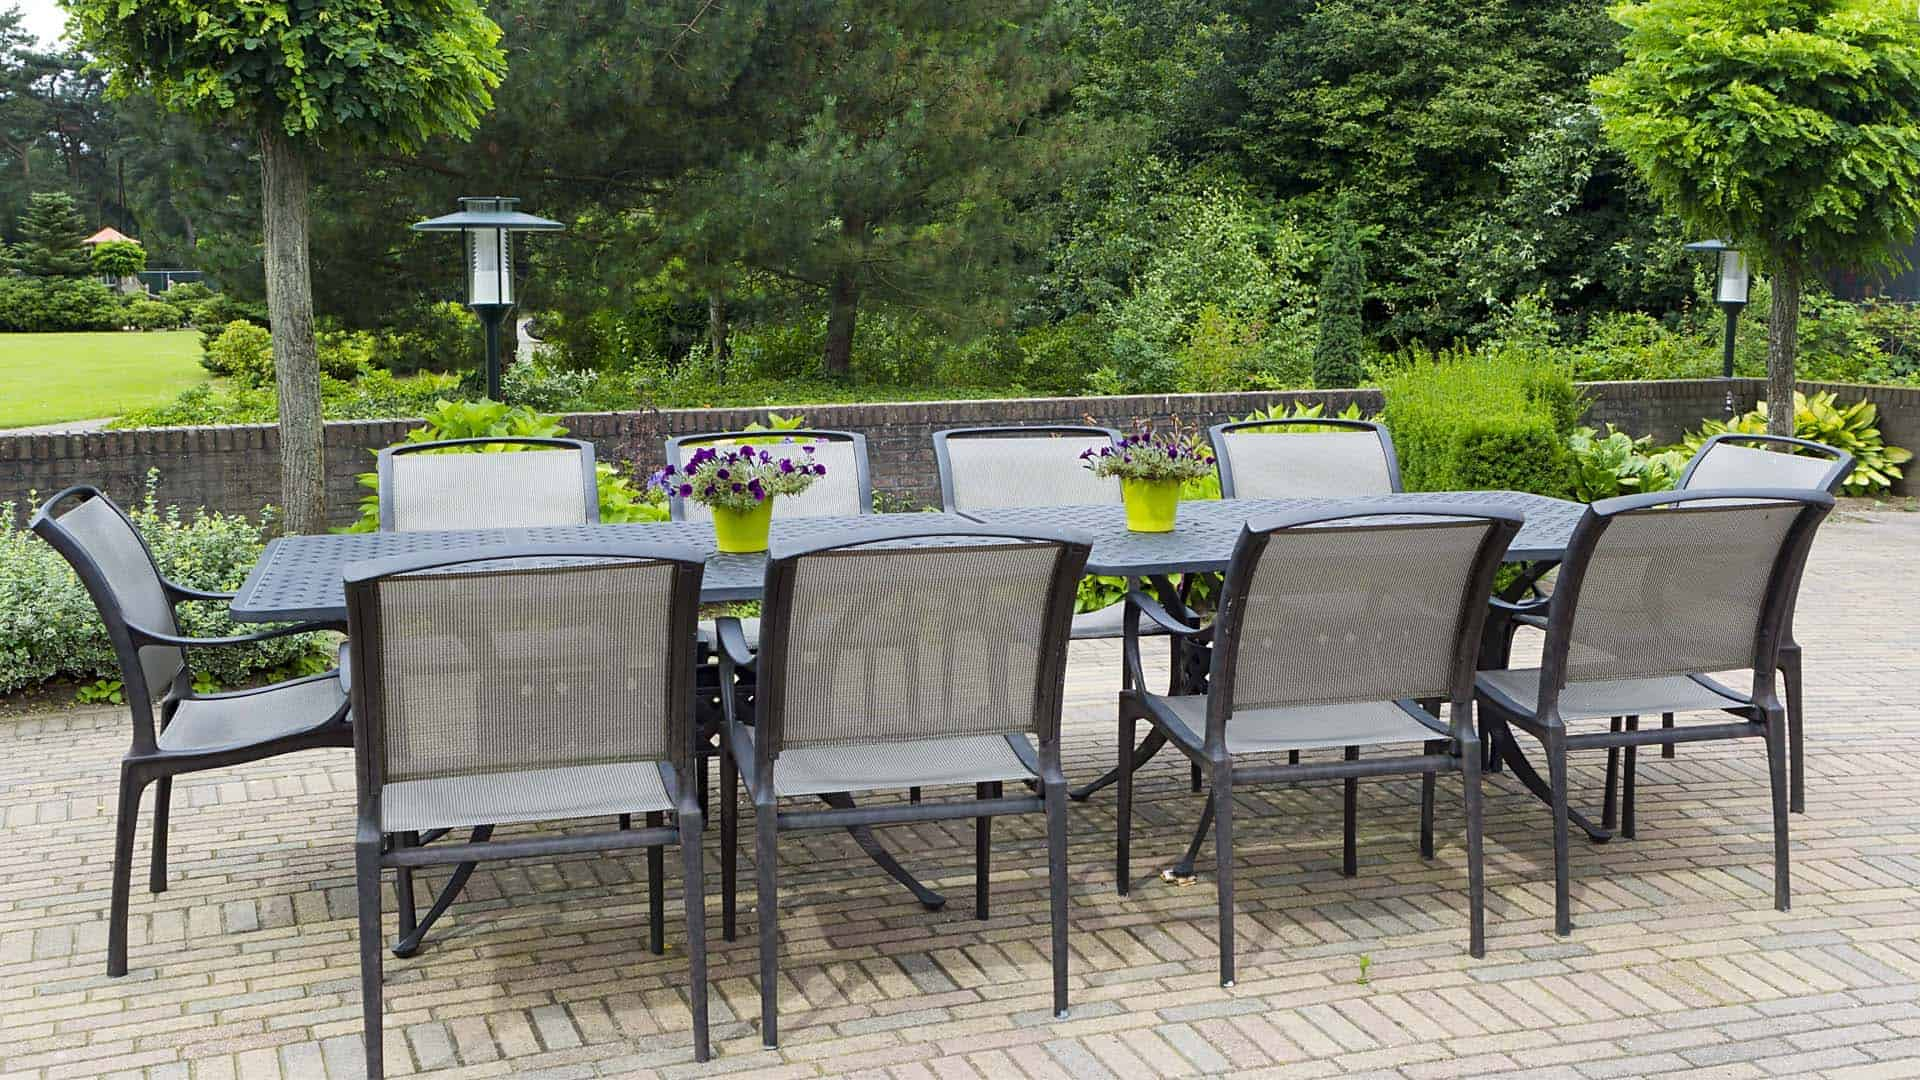 Sling chairs and metal table overlooking garden